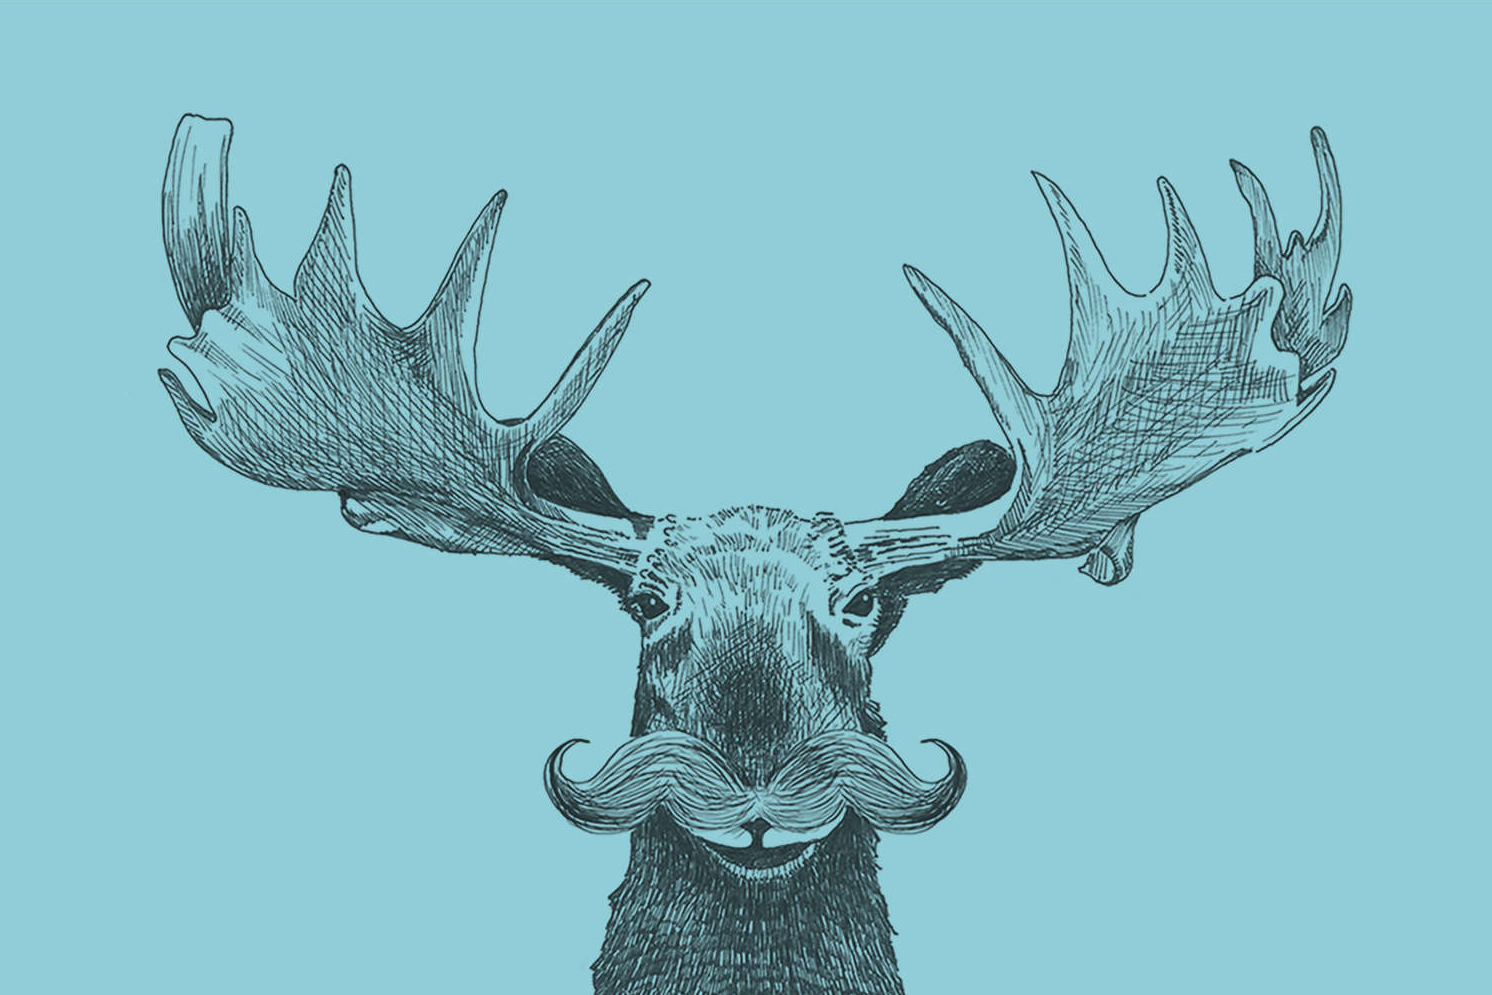 Hand drawn image of a creative moose head facing forward